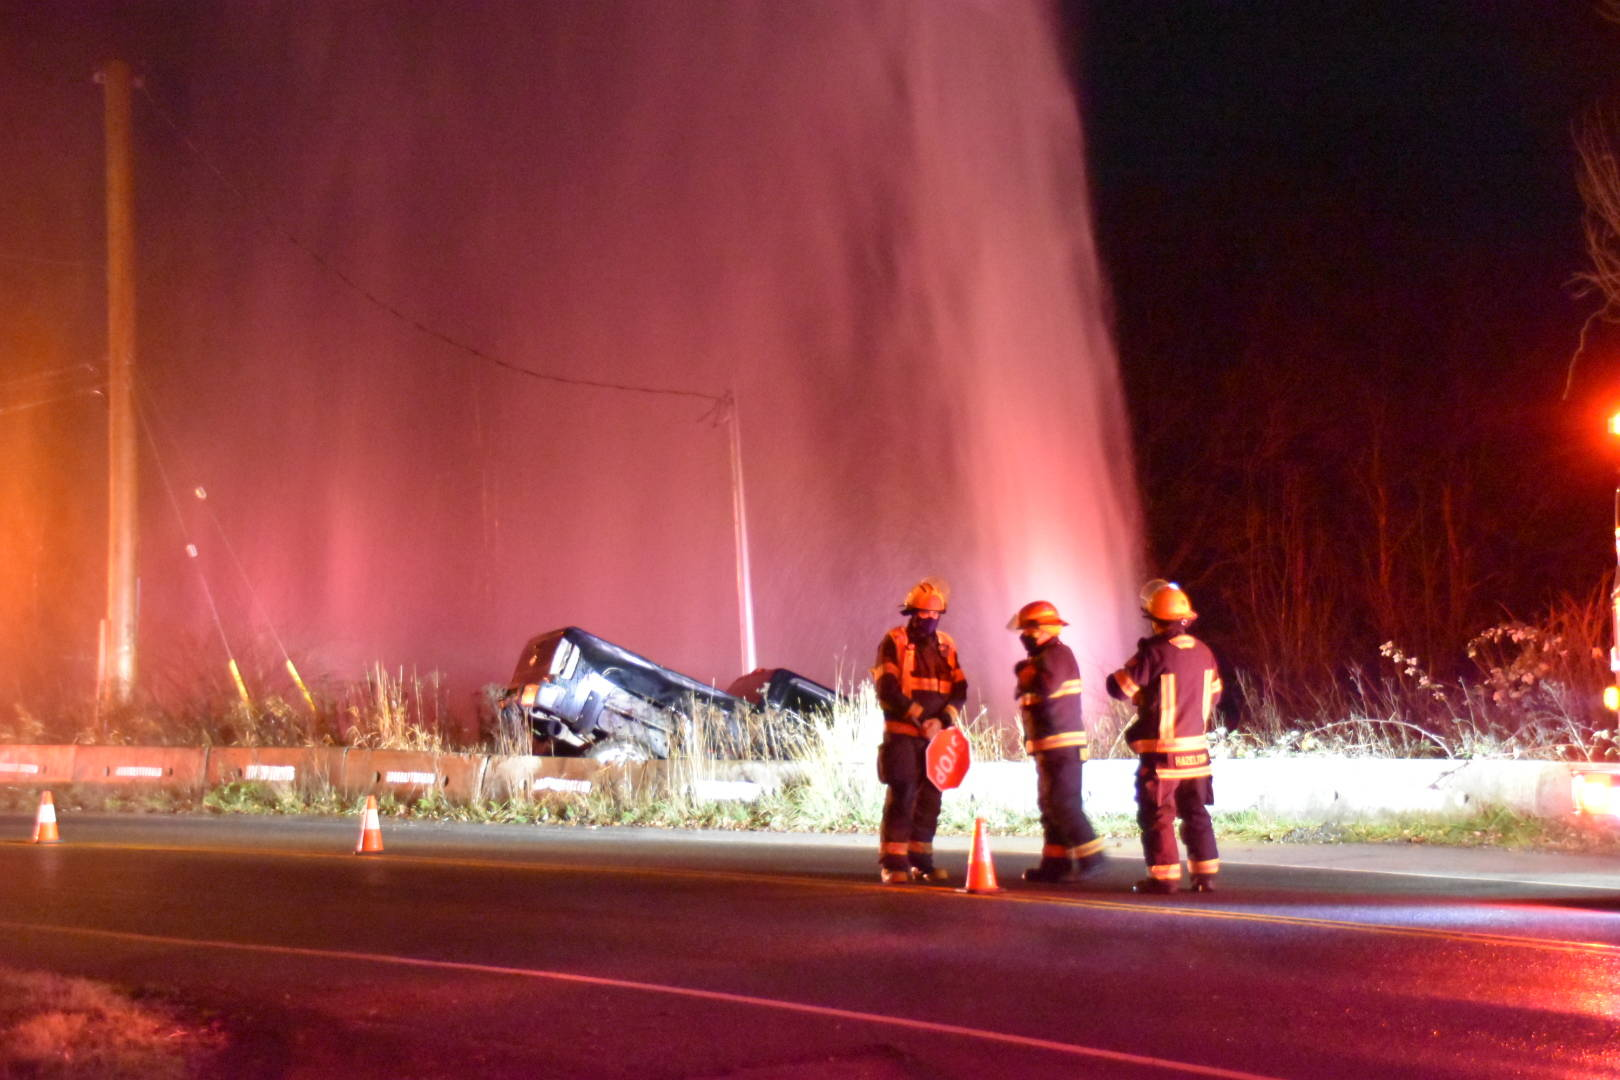 Township of Langley firefighters were called to a crash Thursday, Dec. 3, 2020 where the lone driver of a pickup truck damaged a water main leaving Trinity Western University without water. (Curtis Kreklau/Special to Langley Advance Times)